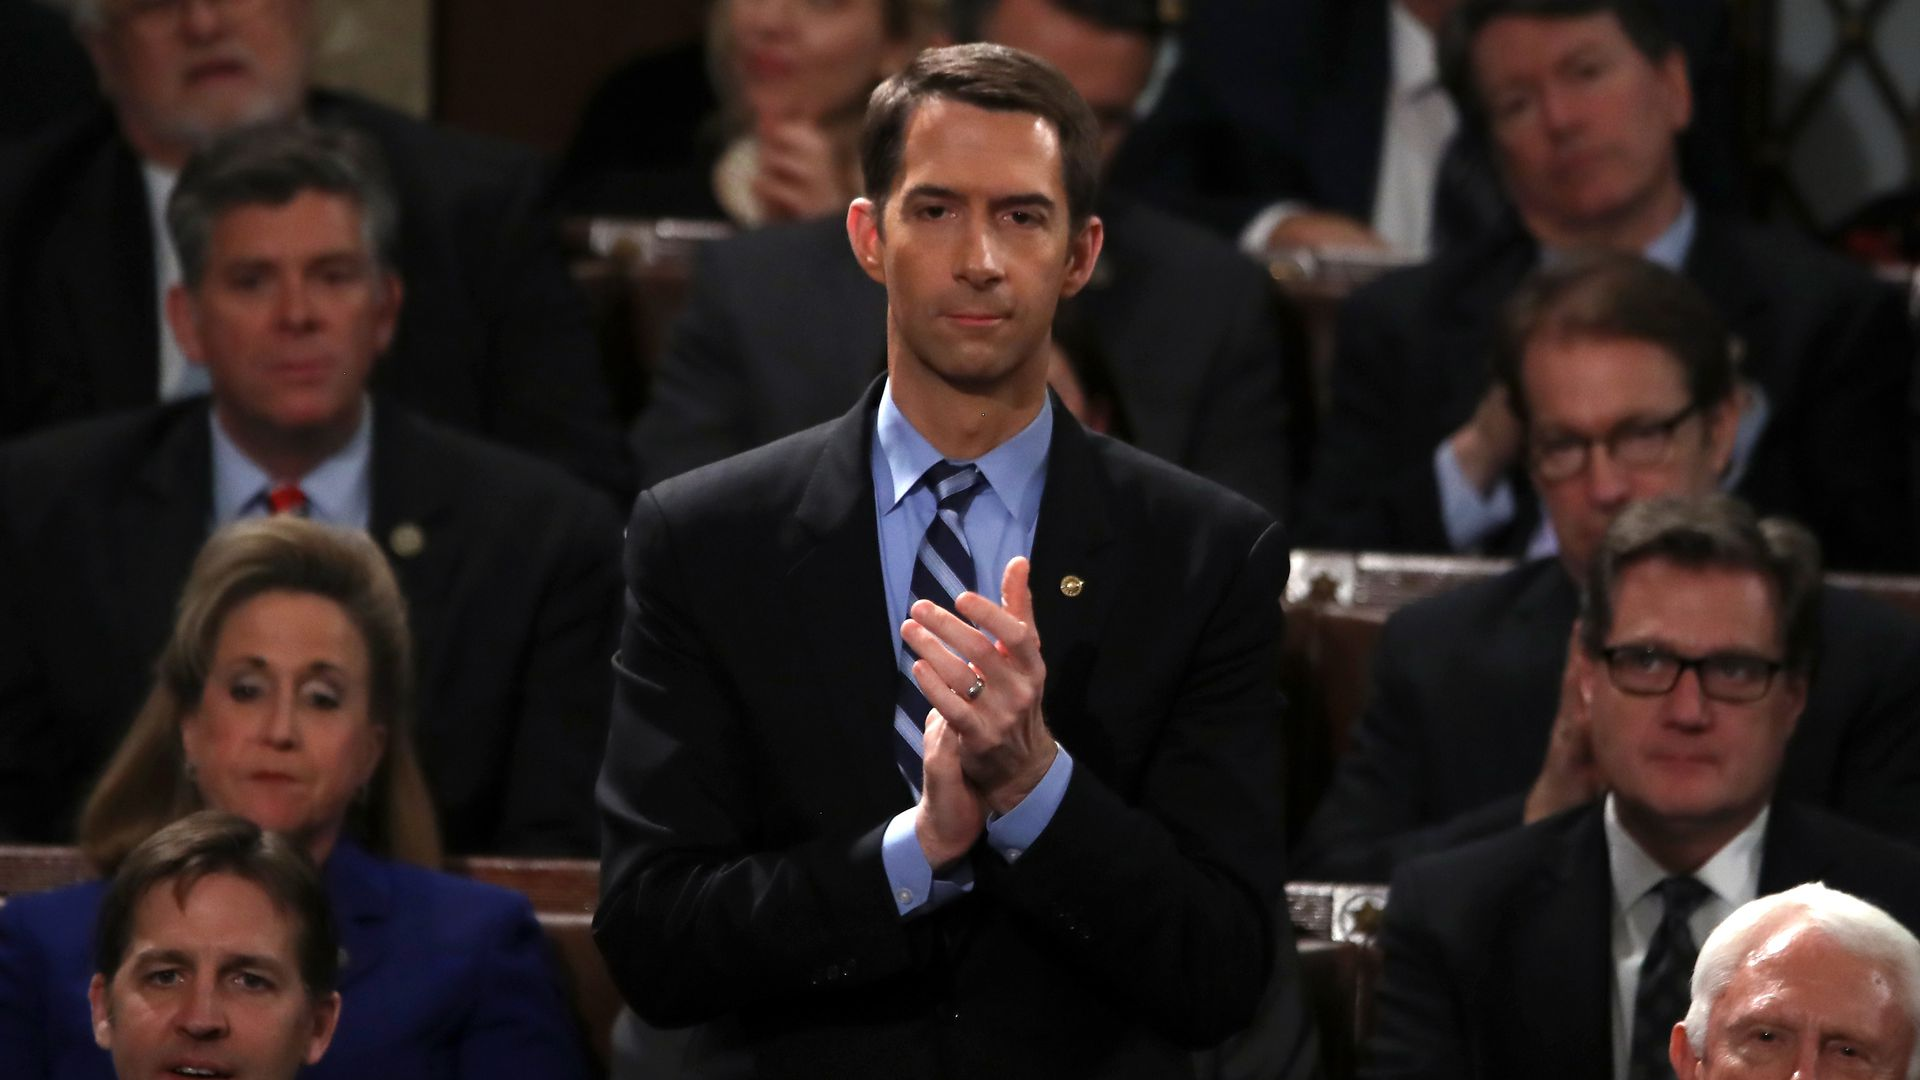 Tom Cotton standing and clapping.